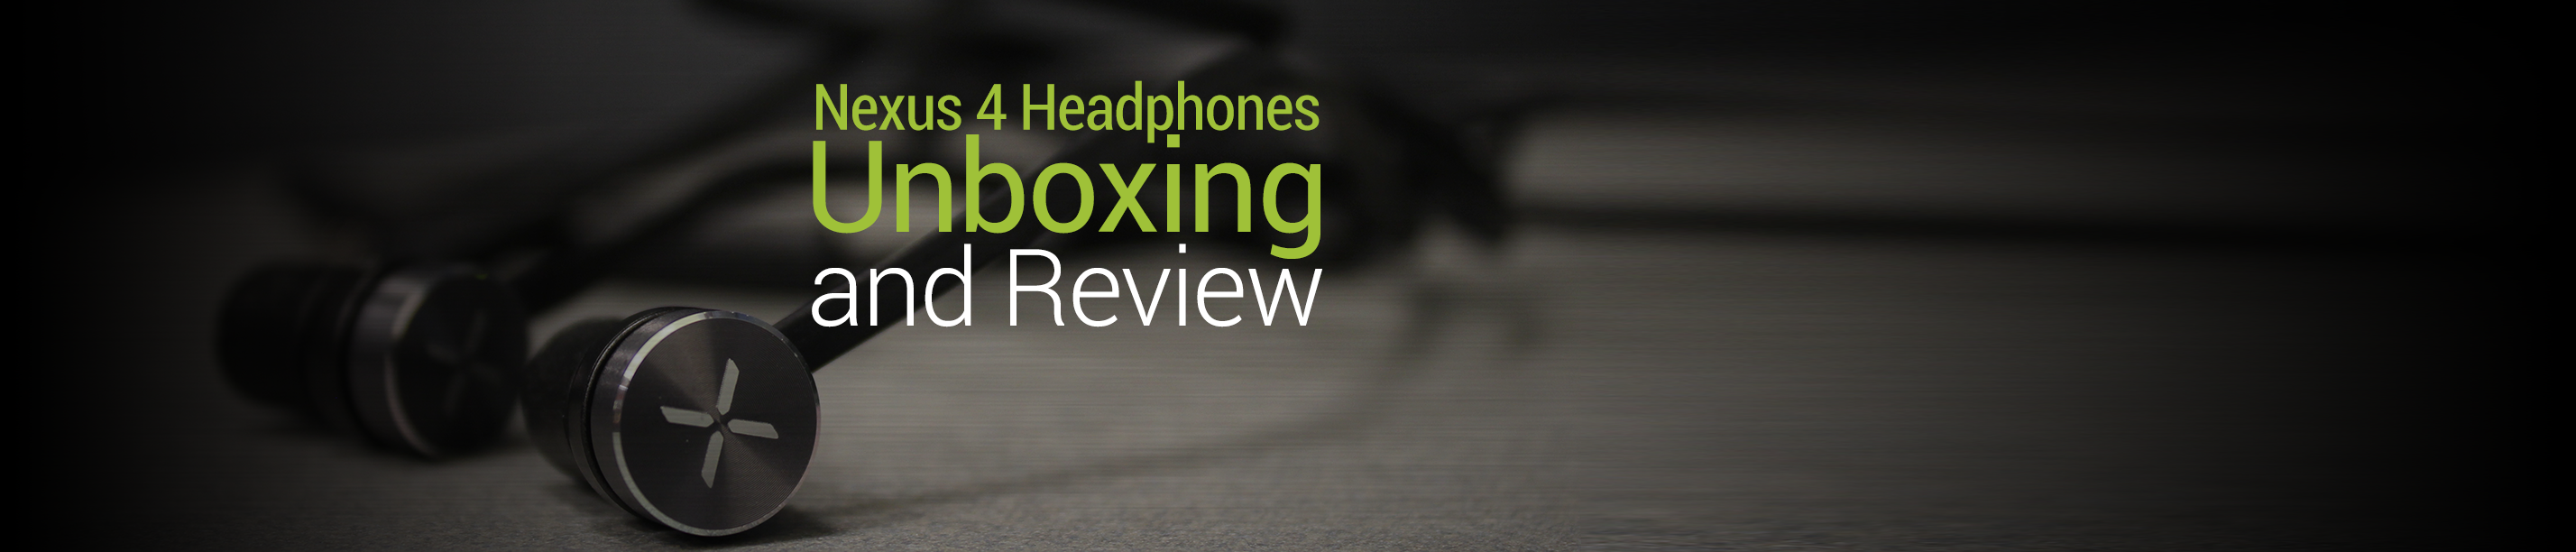 Unboxing and Review of the Nexus 4 Headphones [Video]